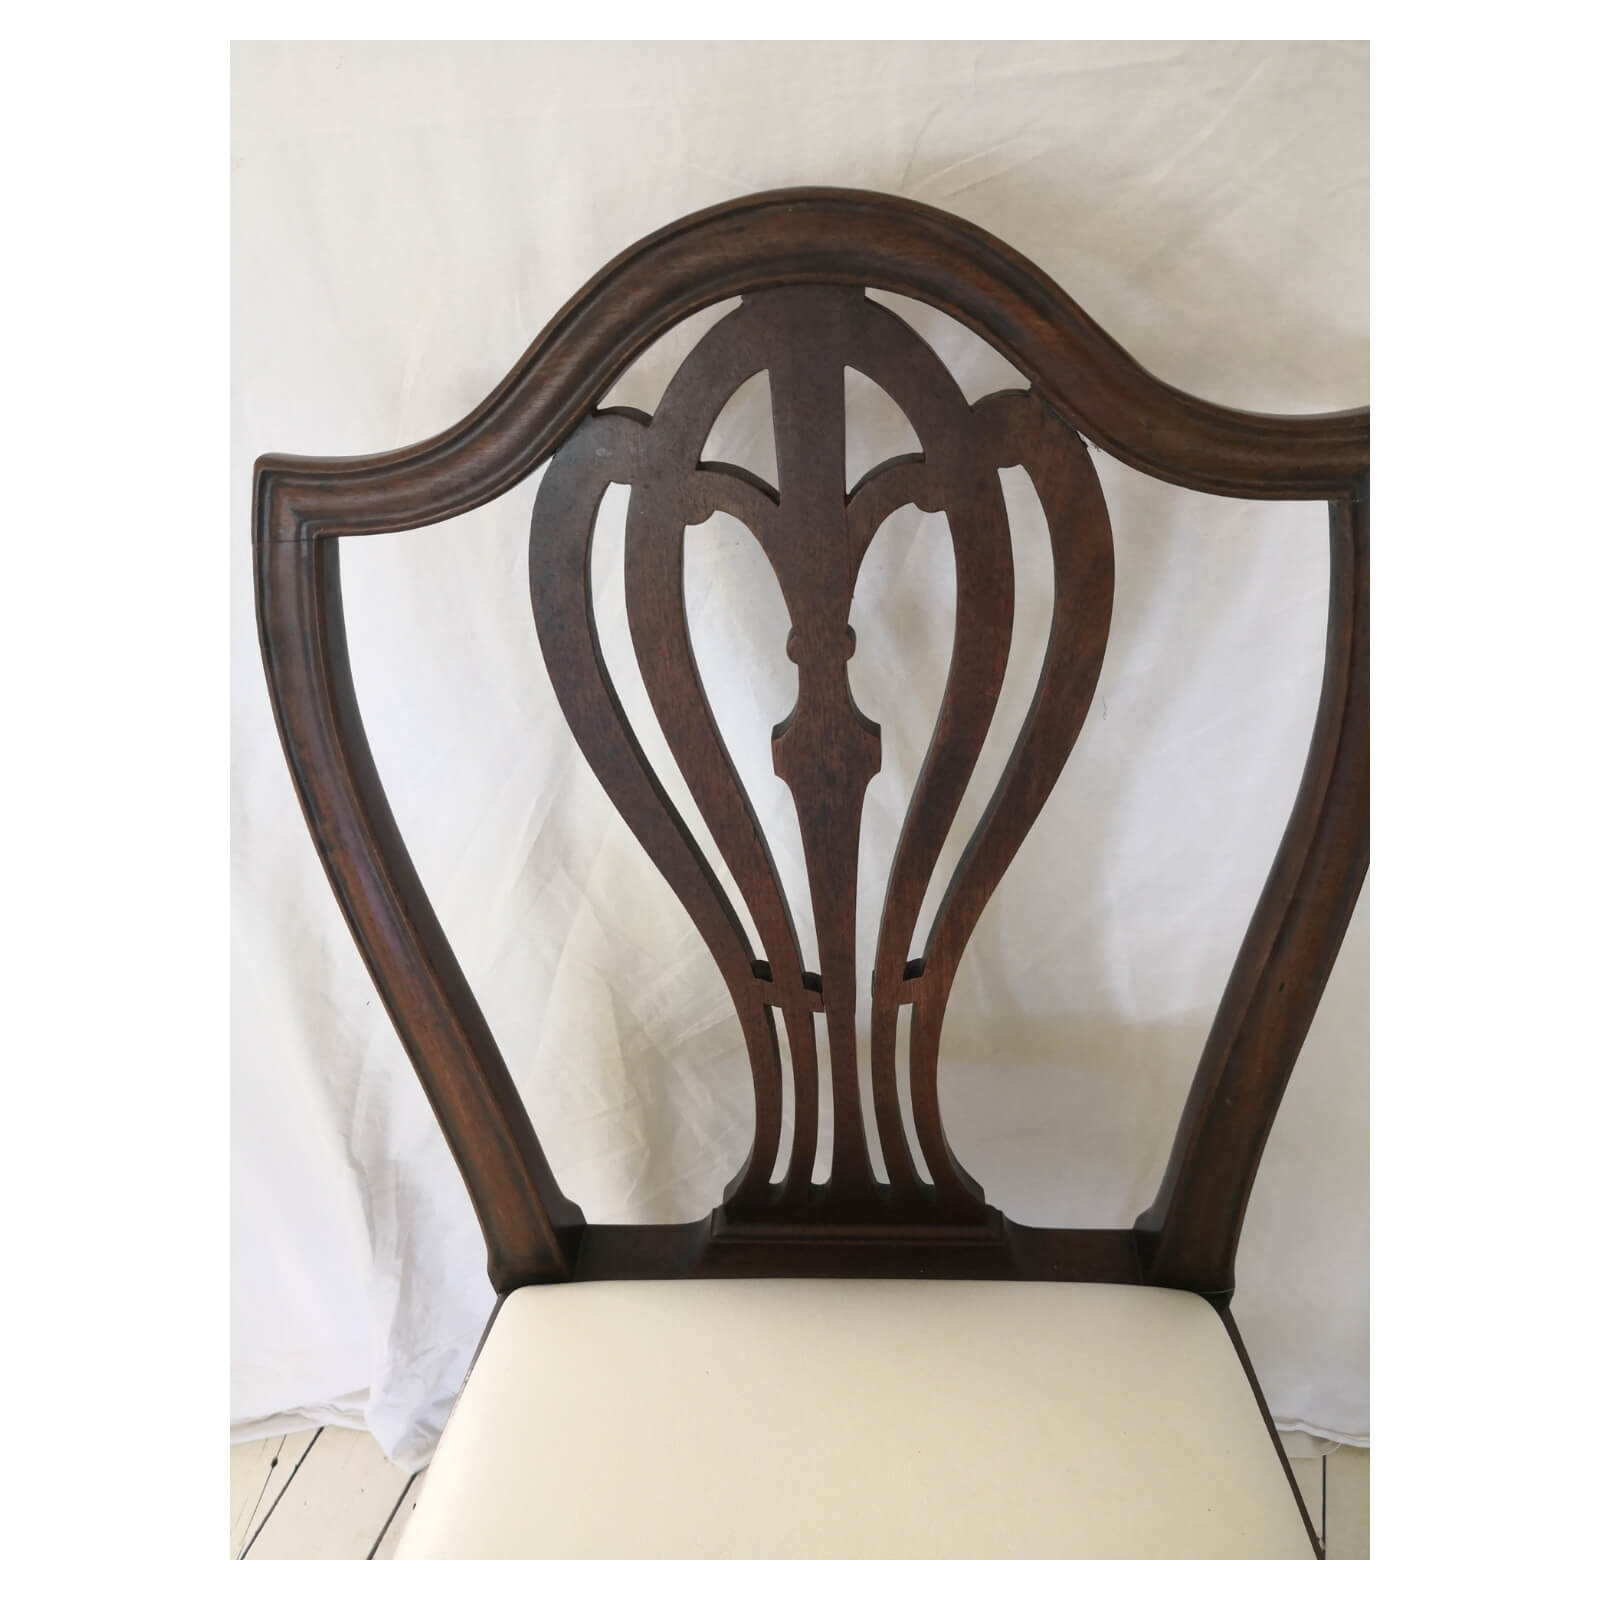 two-design-lovers-Antique-Georgian-pair-of-dining-chairs-missing detail